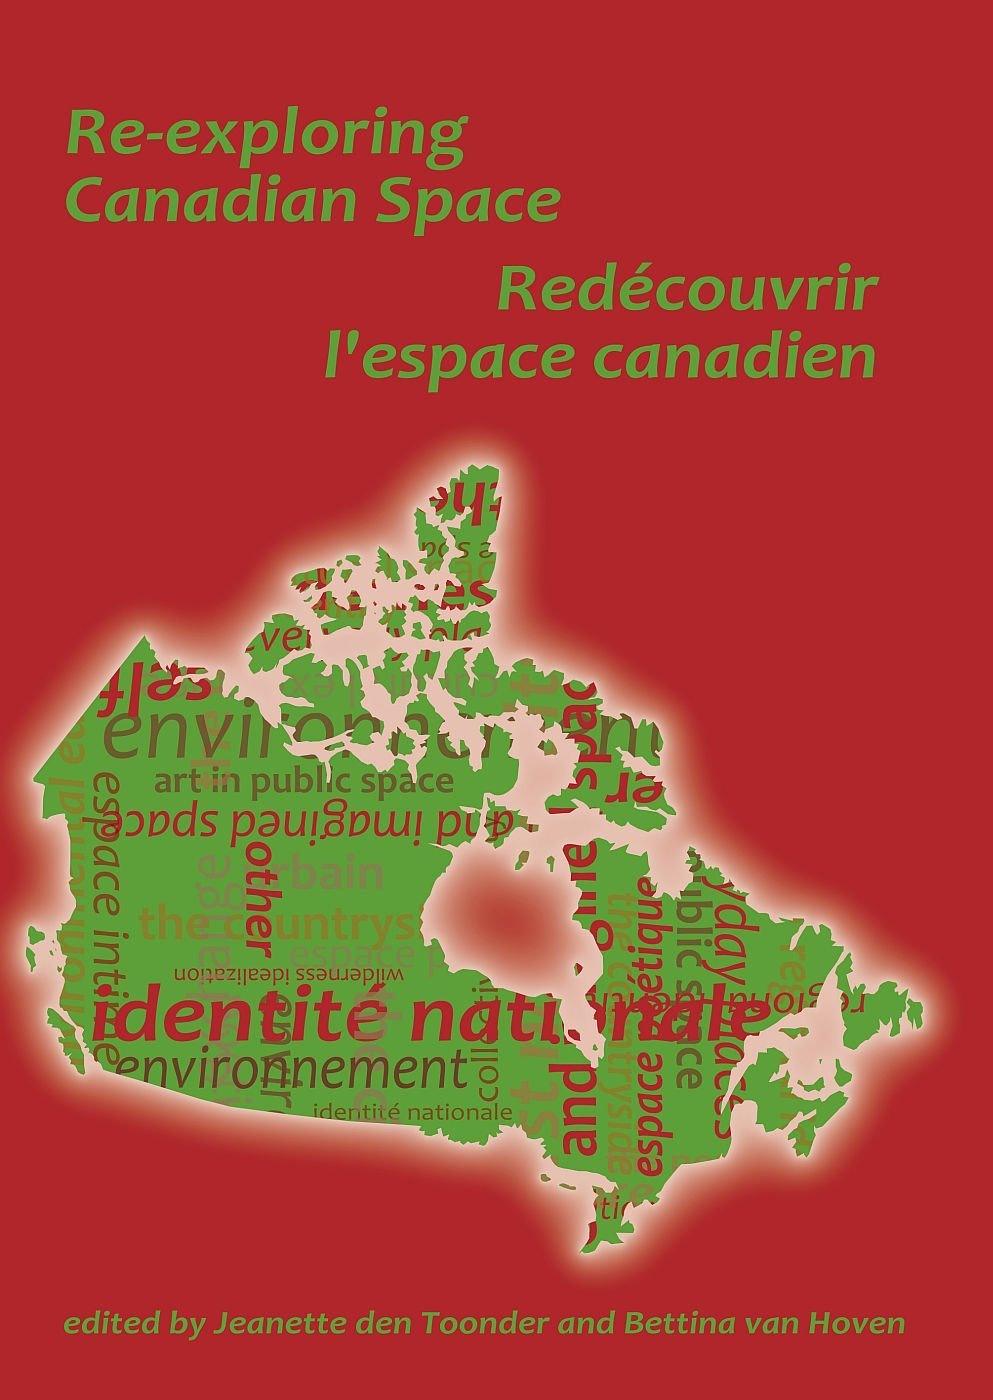 Re-exploring Canadian Space/Redecouvrir l'espace canadien; by Jeanette den Toonder